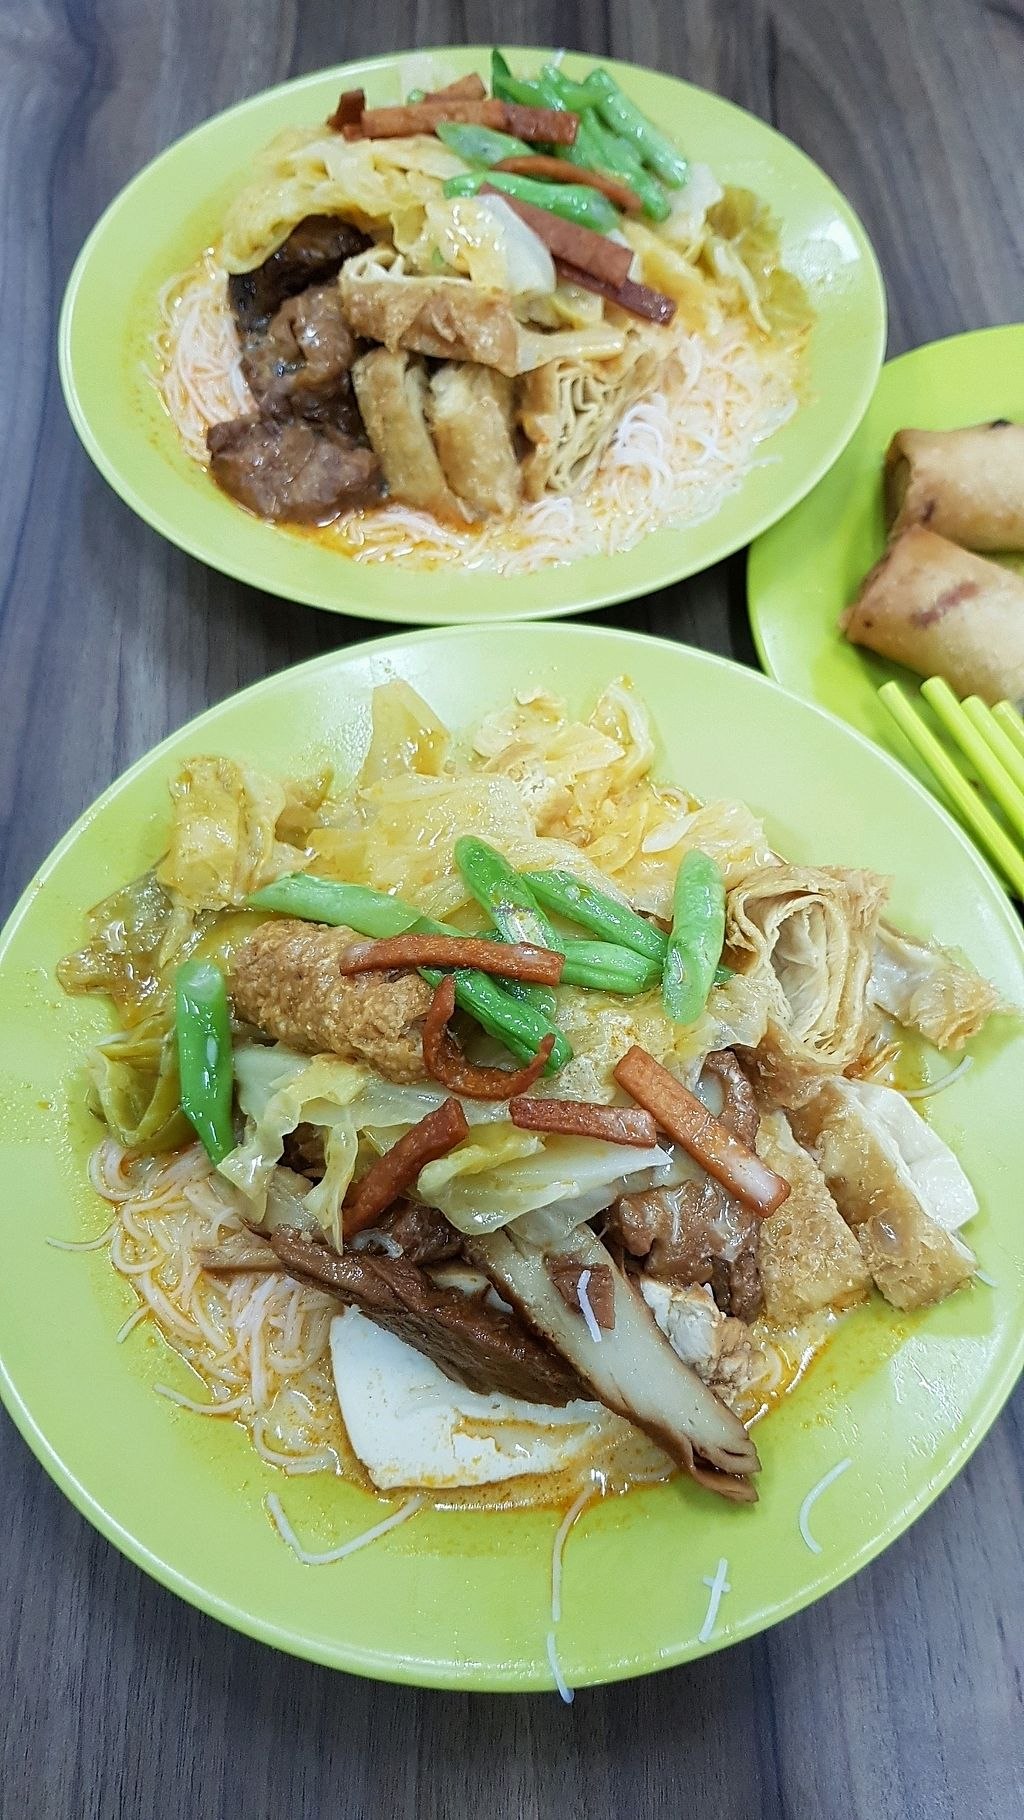 """Photo of Vegetarian Stall  by <a href=""""/members/profile/JensonGoh"""">JensonGoh</a> <br/>white bee hoon with curry vege <br/> March 17, 2018  - <a href='/contact/abuse/image/109084/372161'>Report</a>"""